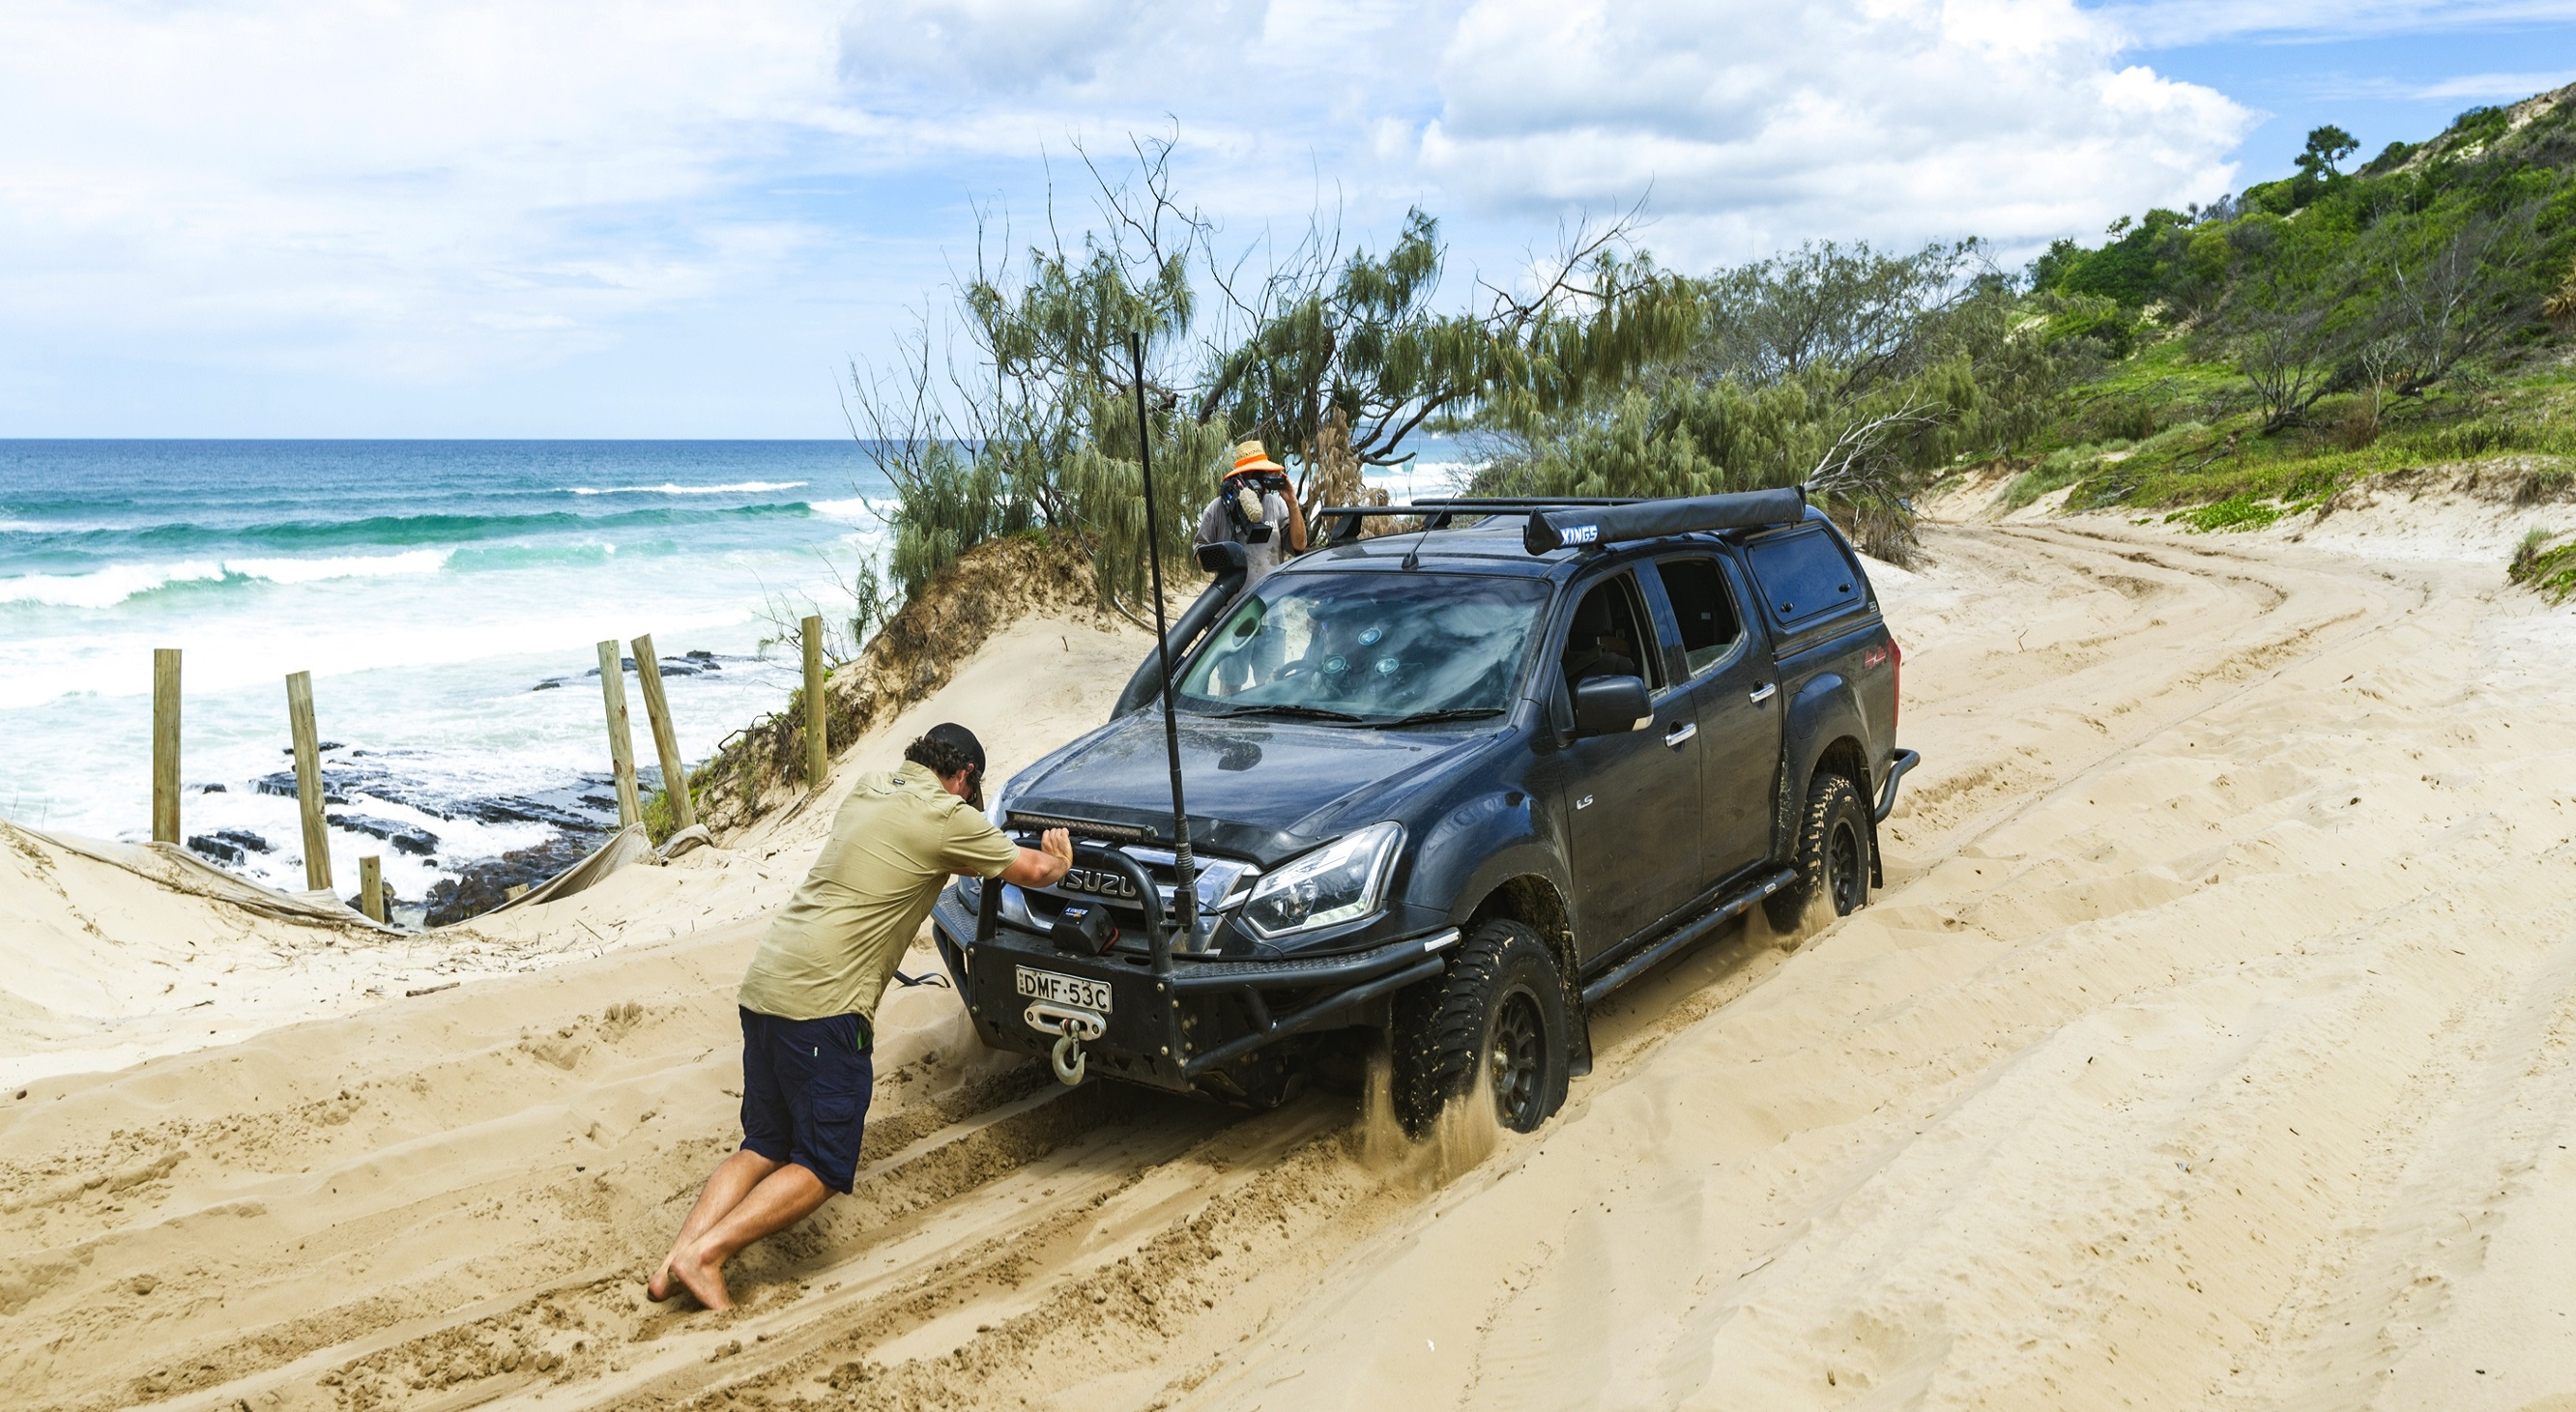 5 Tips for capturing crisp outdoor memories! - image 180108-FraserIsland-Driving-22 on https://www.4wdsupacentre.com.au/news